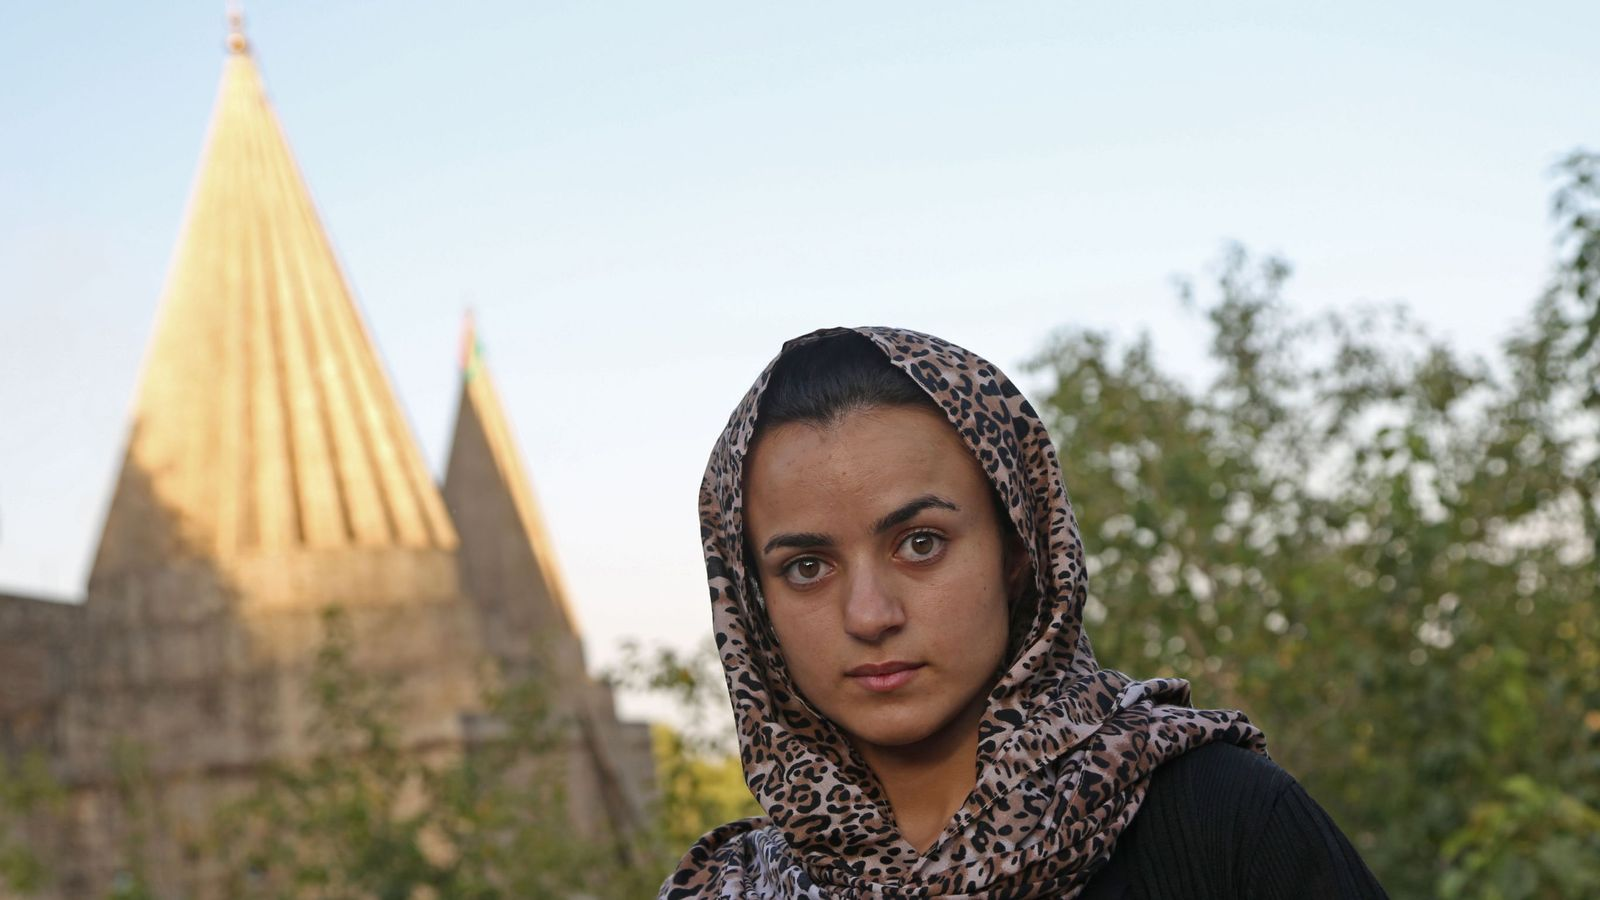 Germany probing Yazidi teen's claim her former IS captor tracked her down